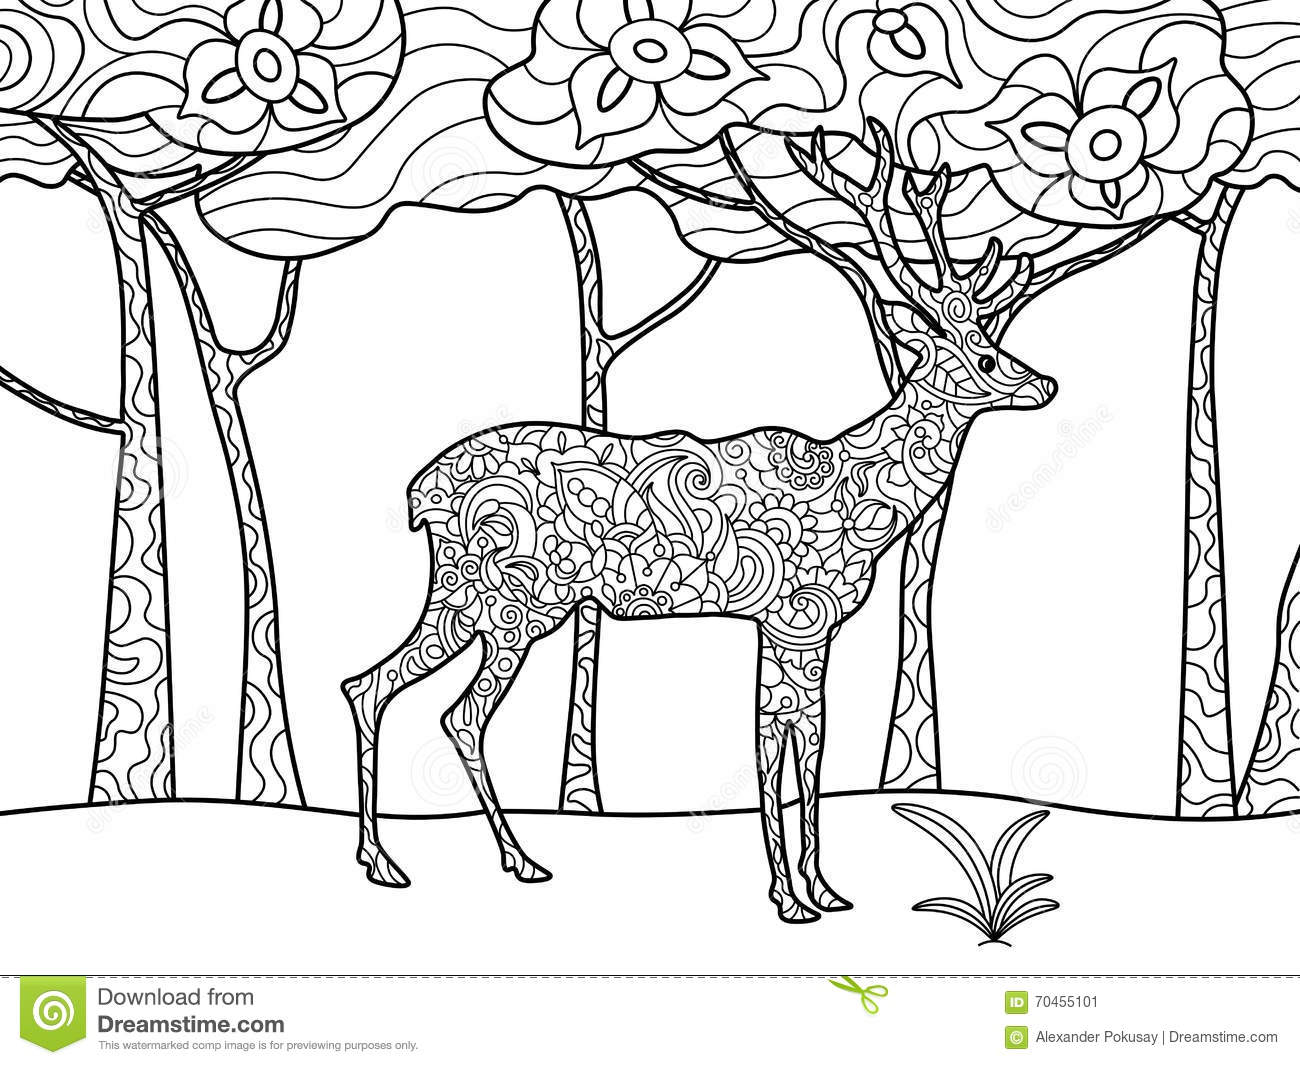 Deer Coloring Book For Adults Raster Stock Vector - Image ...